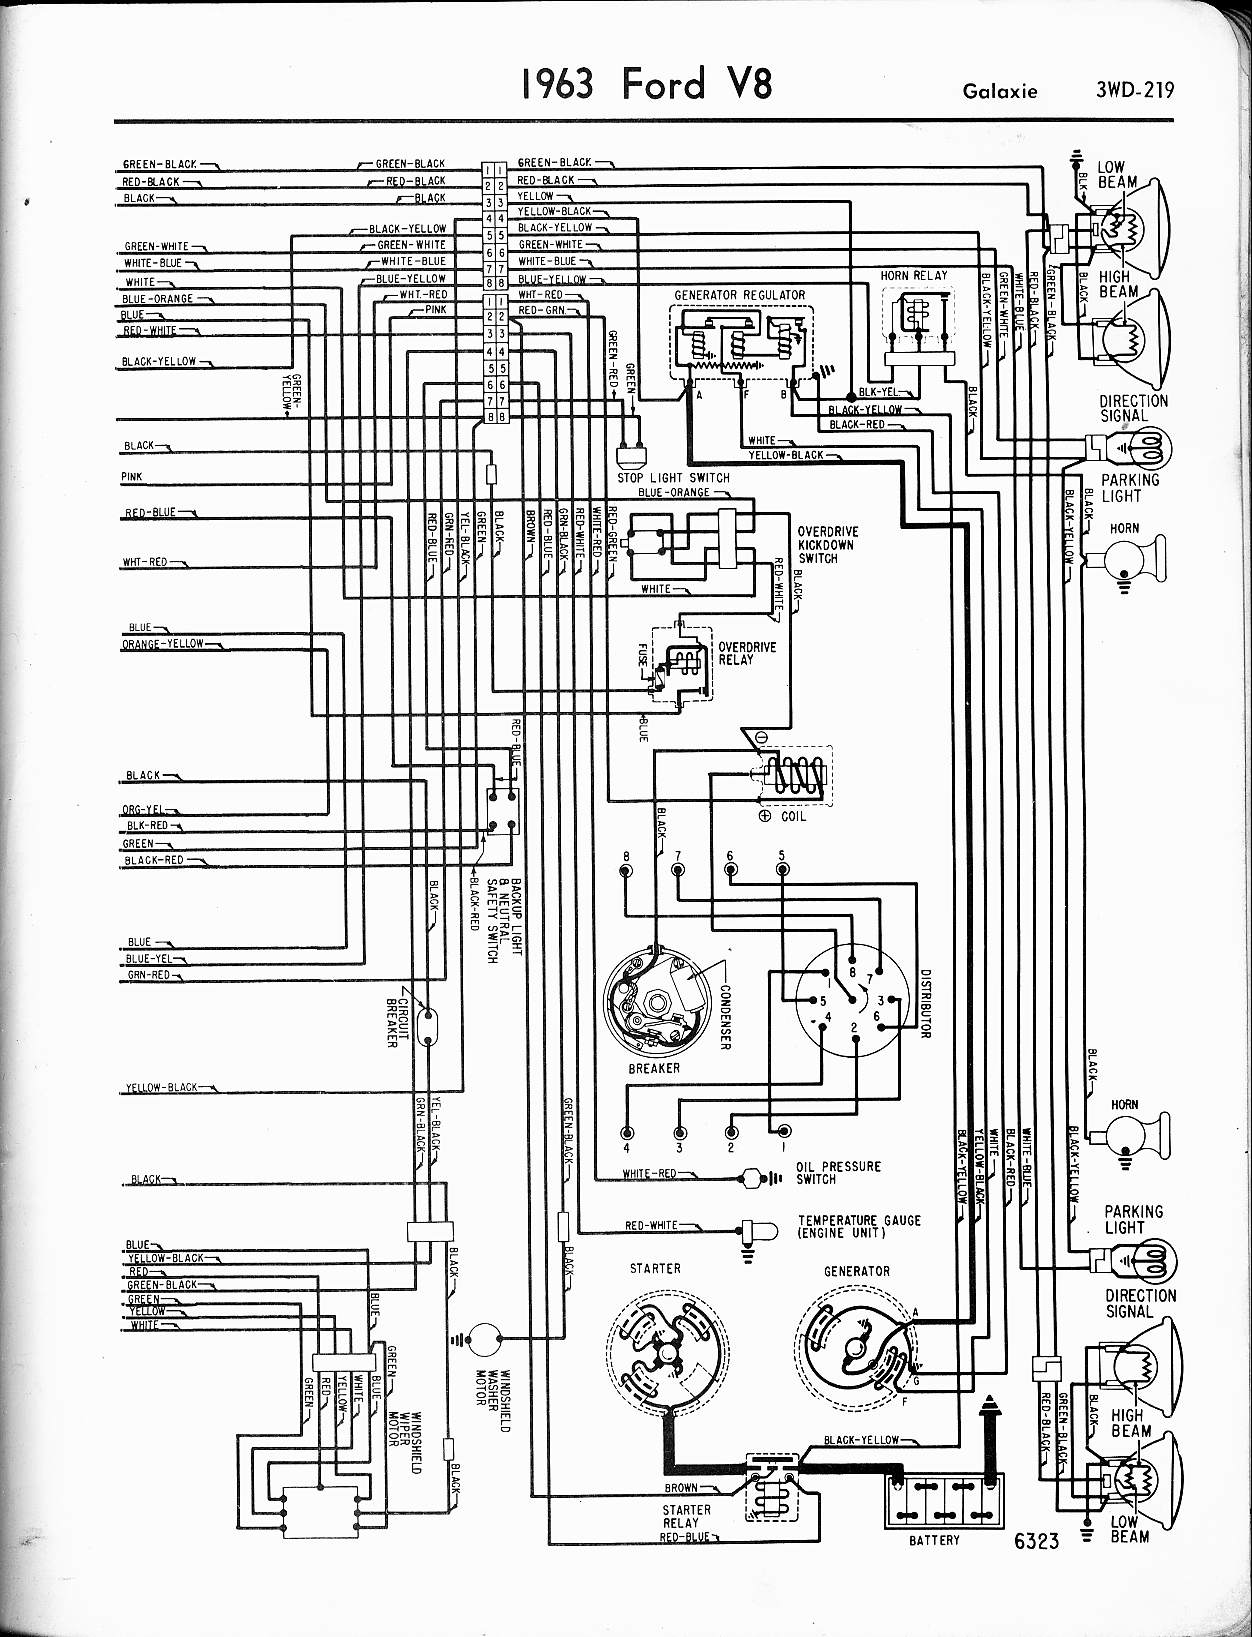 Ford Five Hundred Wiring Diagram from www.oldcarmanualproject.com